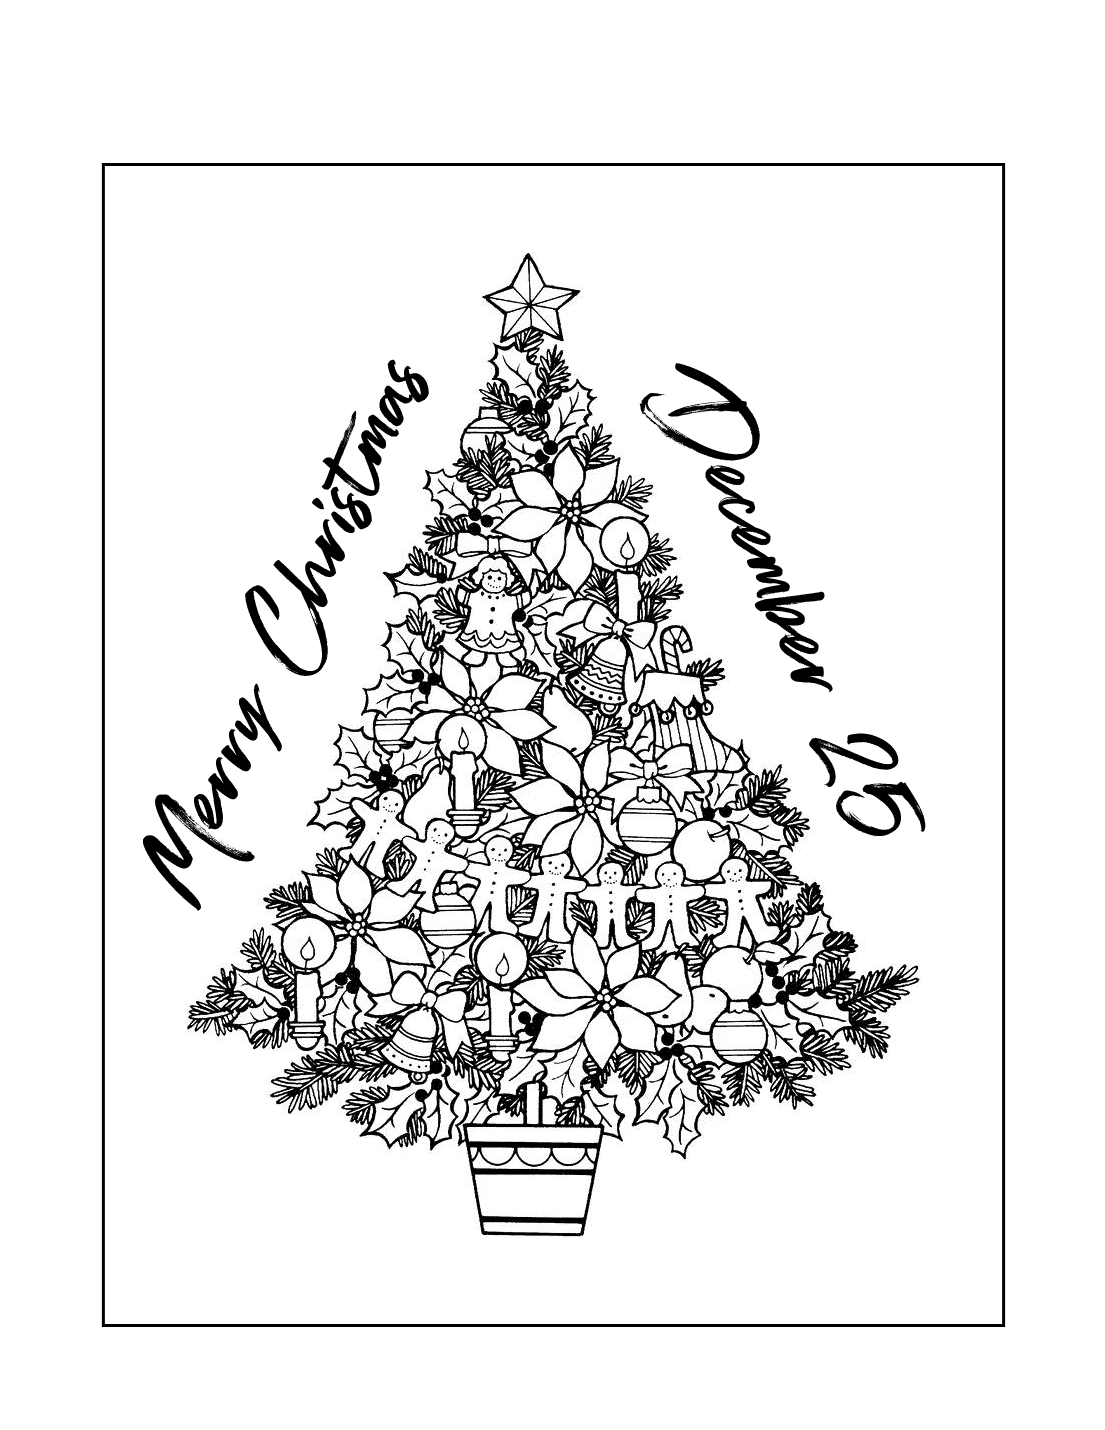 December 25 Christmas Coloring Page